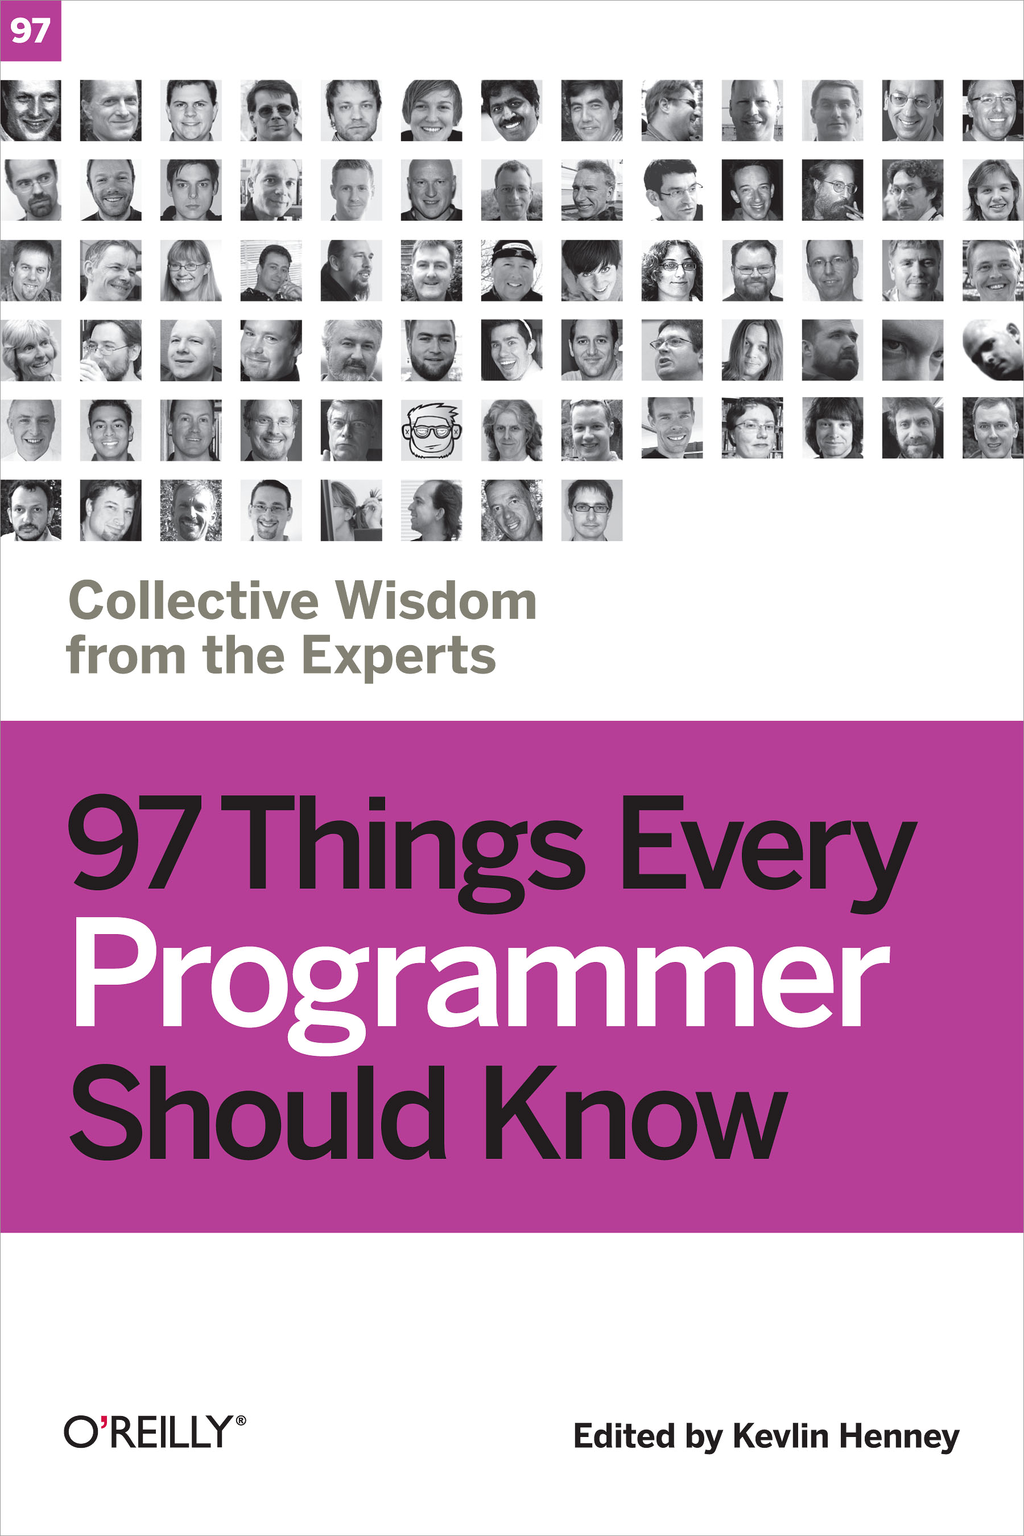 97 Things Every Programmer Should Know By: Kevlin Henney